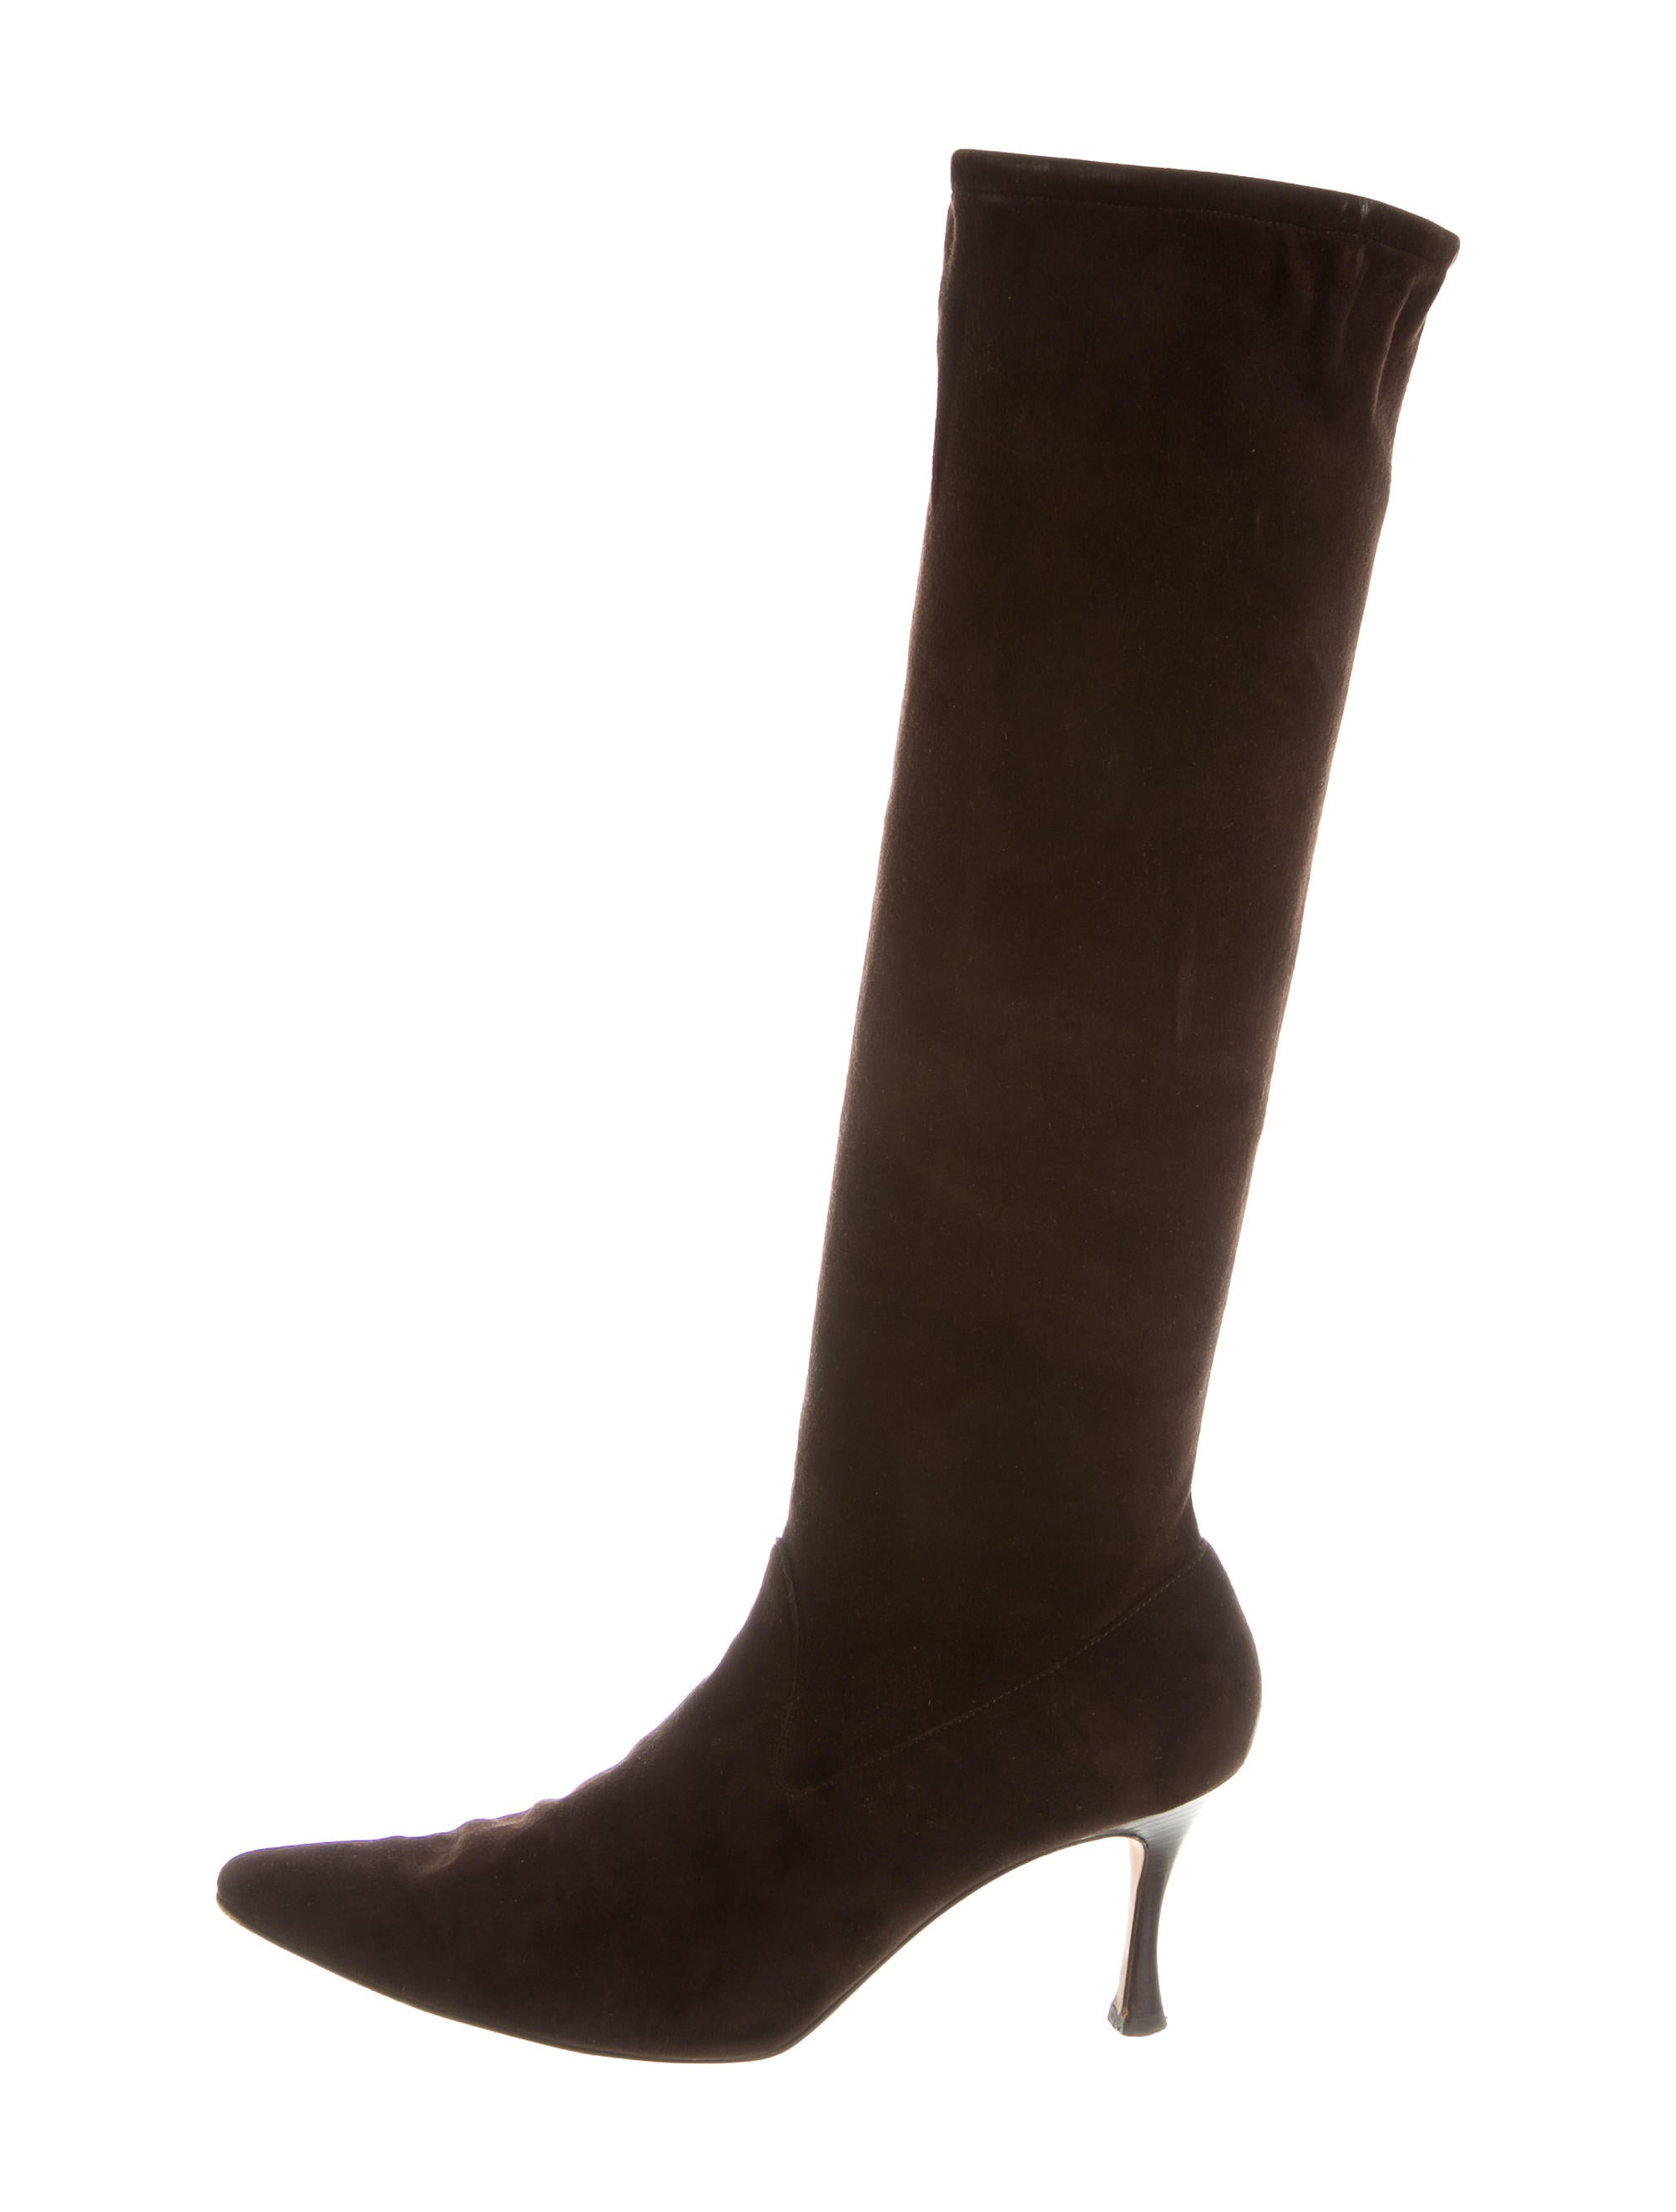 manolo blahnik suede knee high boots shoes moo52886